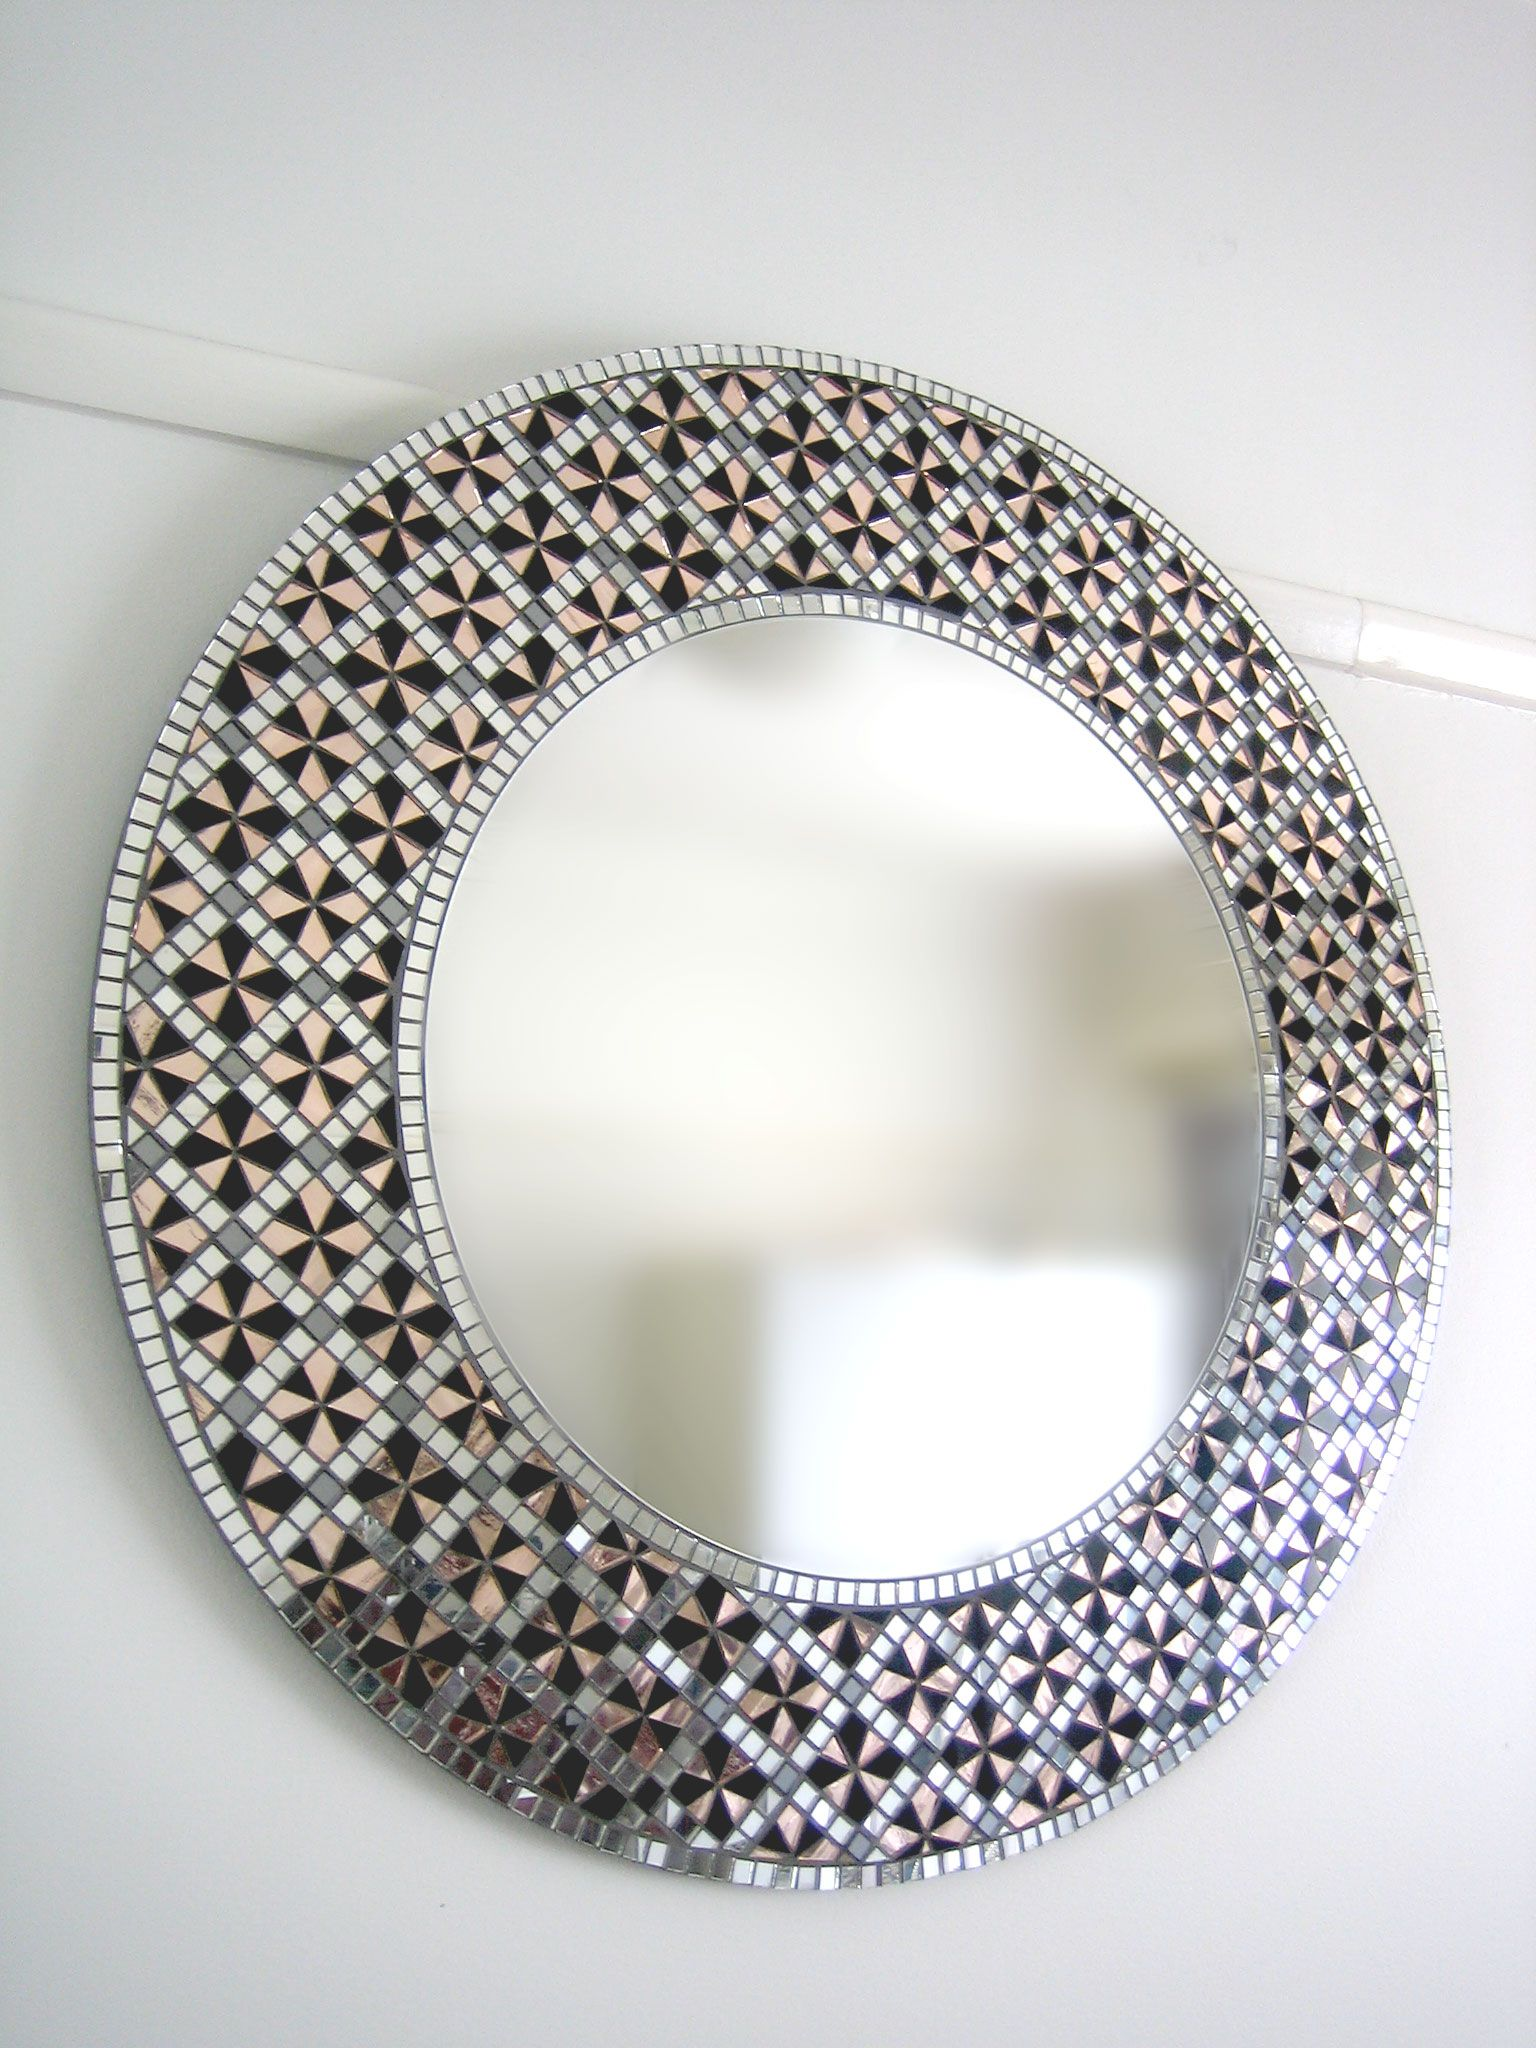 Black Rose mosaic mirror by Mirror Envy. 2 in Series of 4. This is the largest of the series.